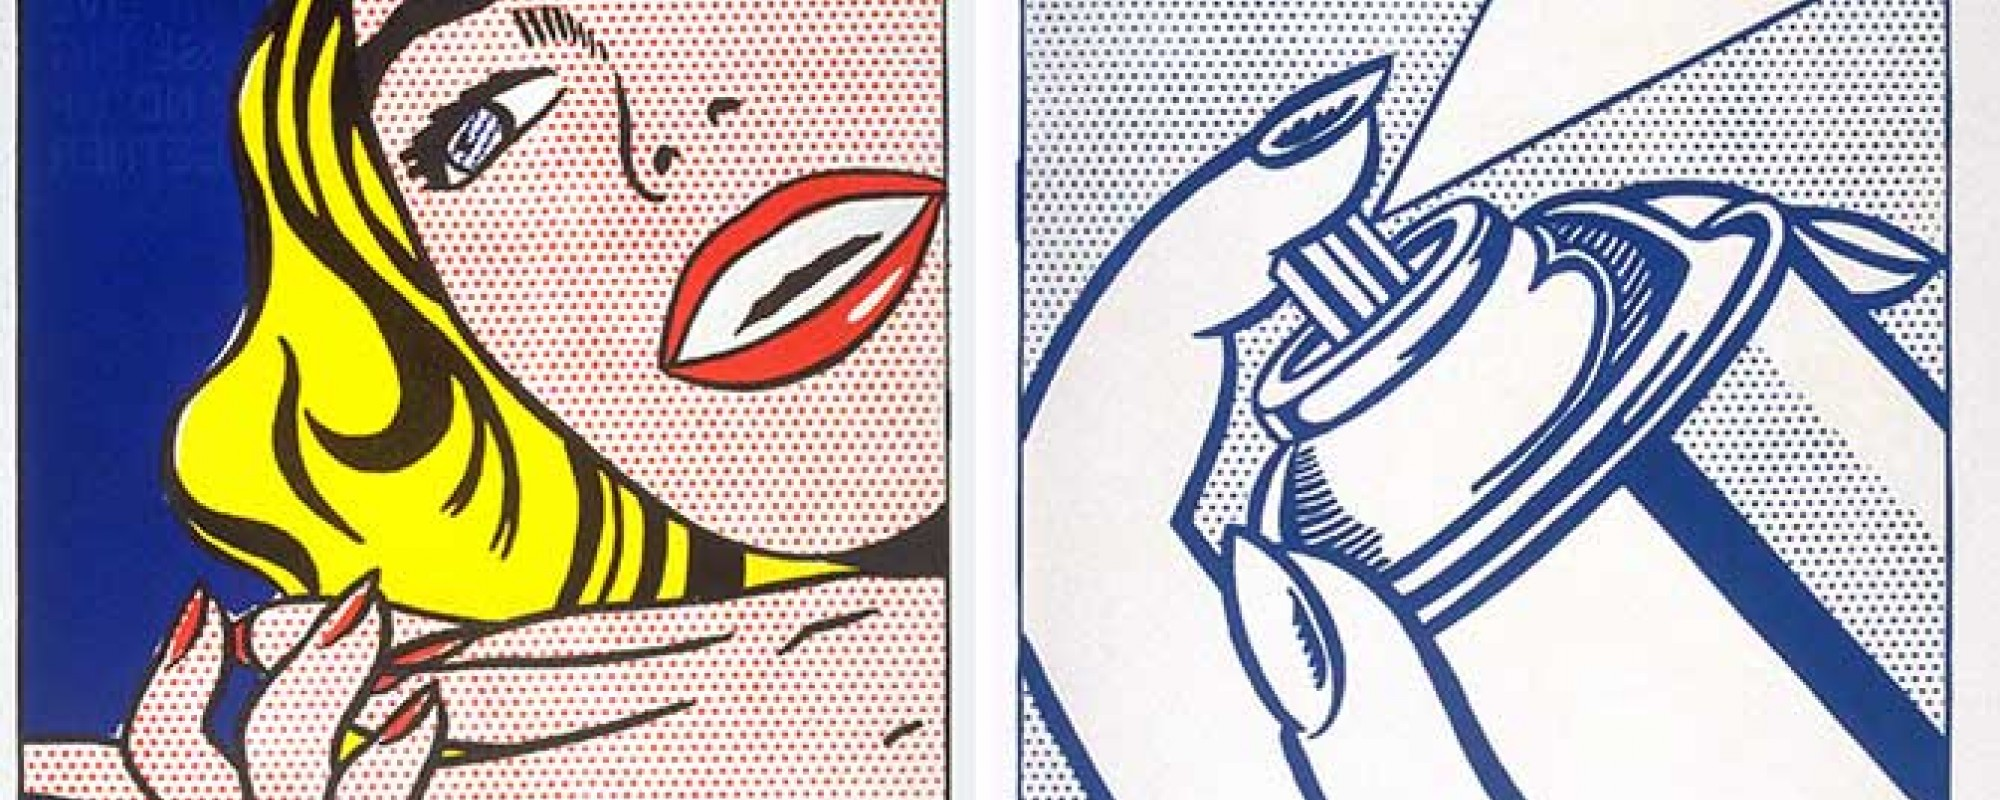 Walasse Ting/Roy Lichtenstein Girl and Spray Can